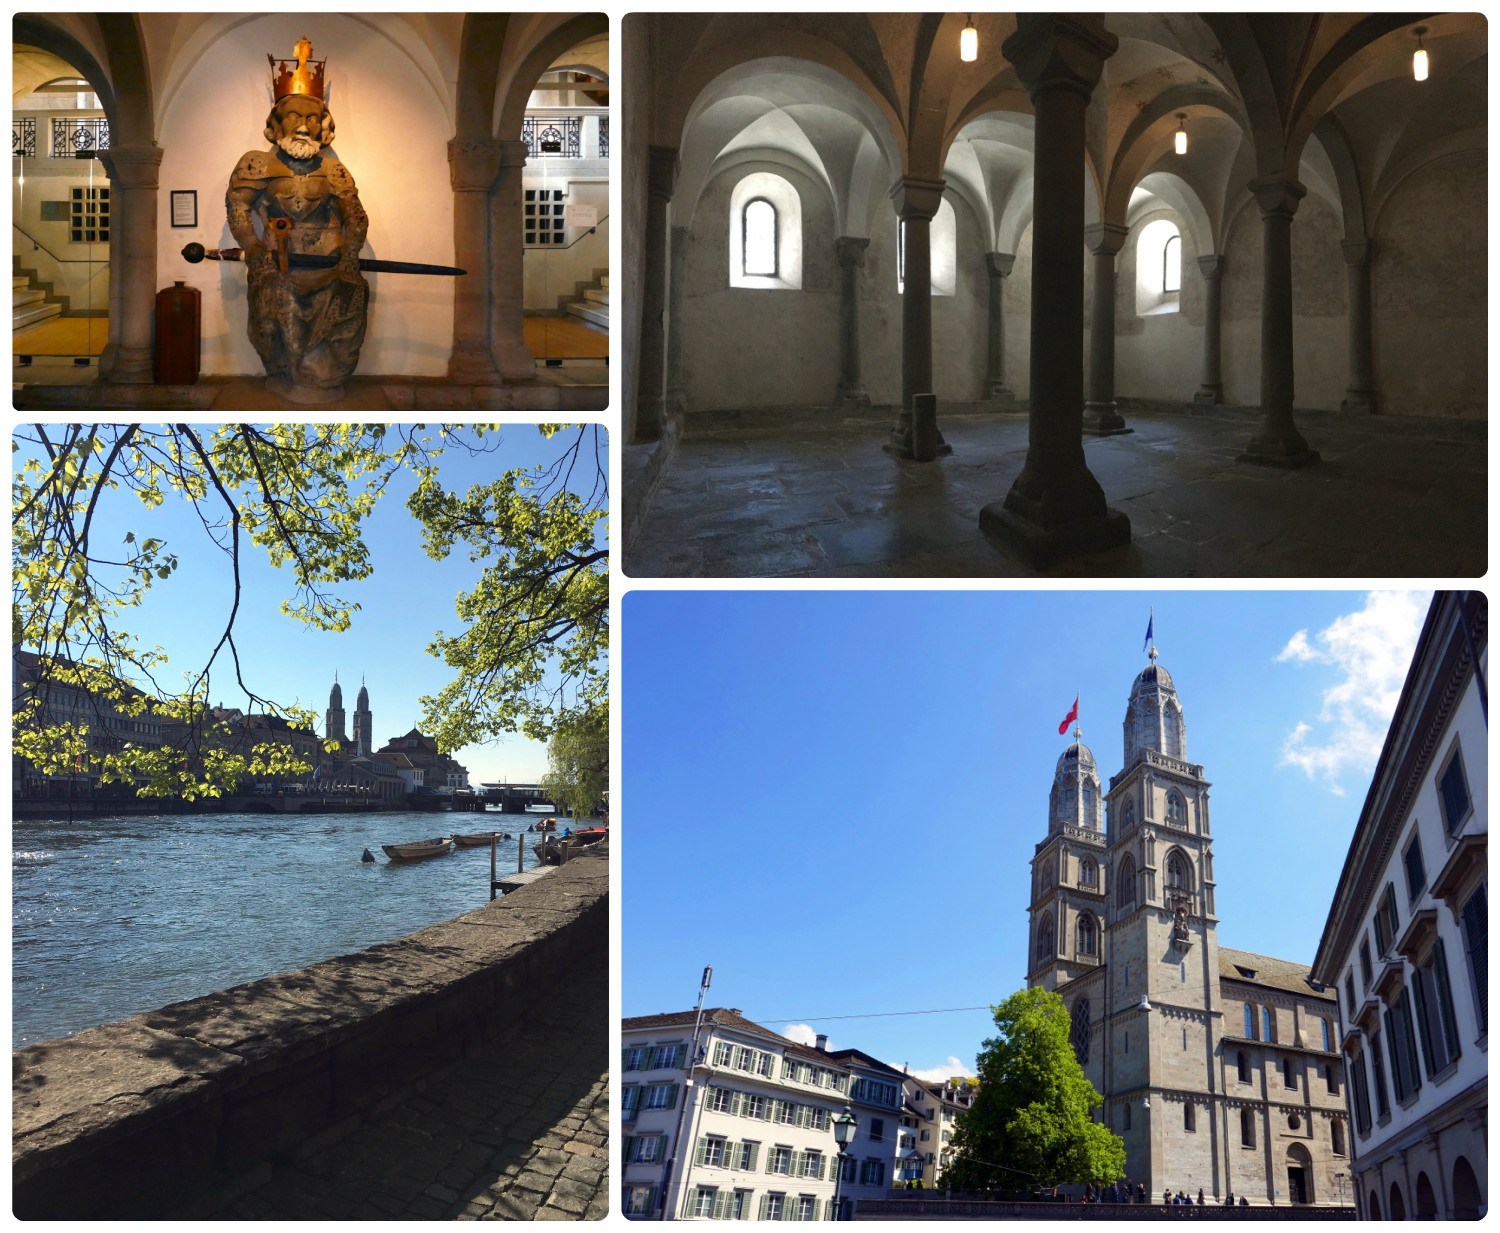 Clockwise (from the top): The sculpture of Charlemagne in the crypt, the archways in the crypt, the exterior of Great Minster (Grossmünster), the towers of Great Minster (Grossmünster) can be seen from across the city.